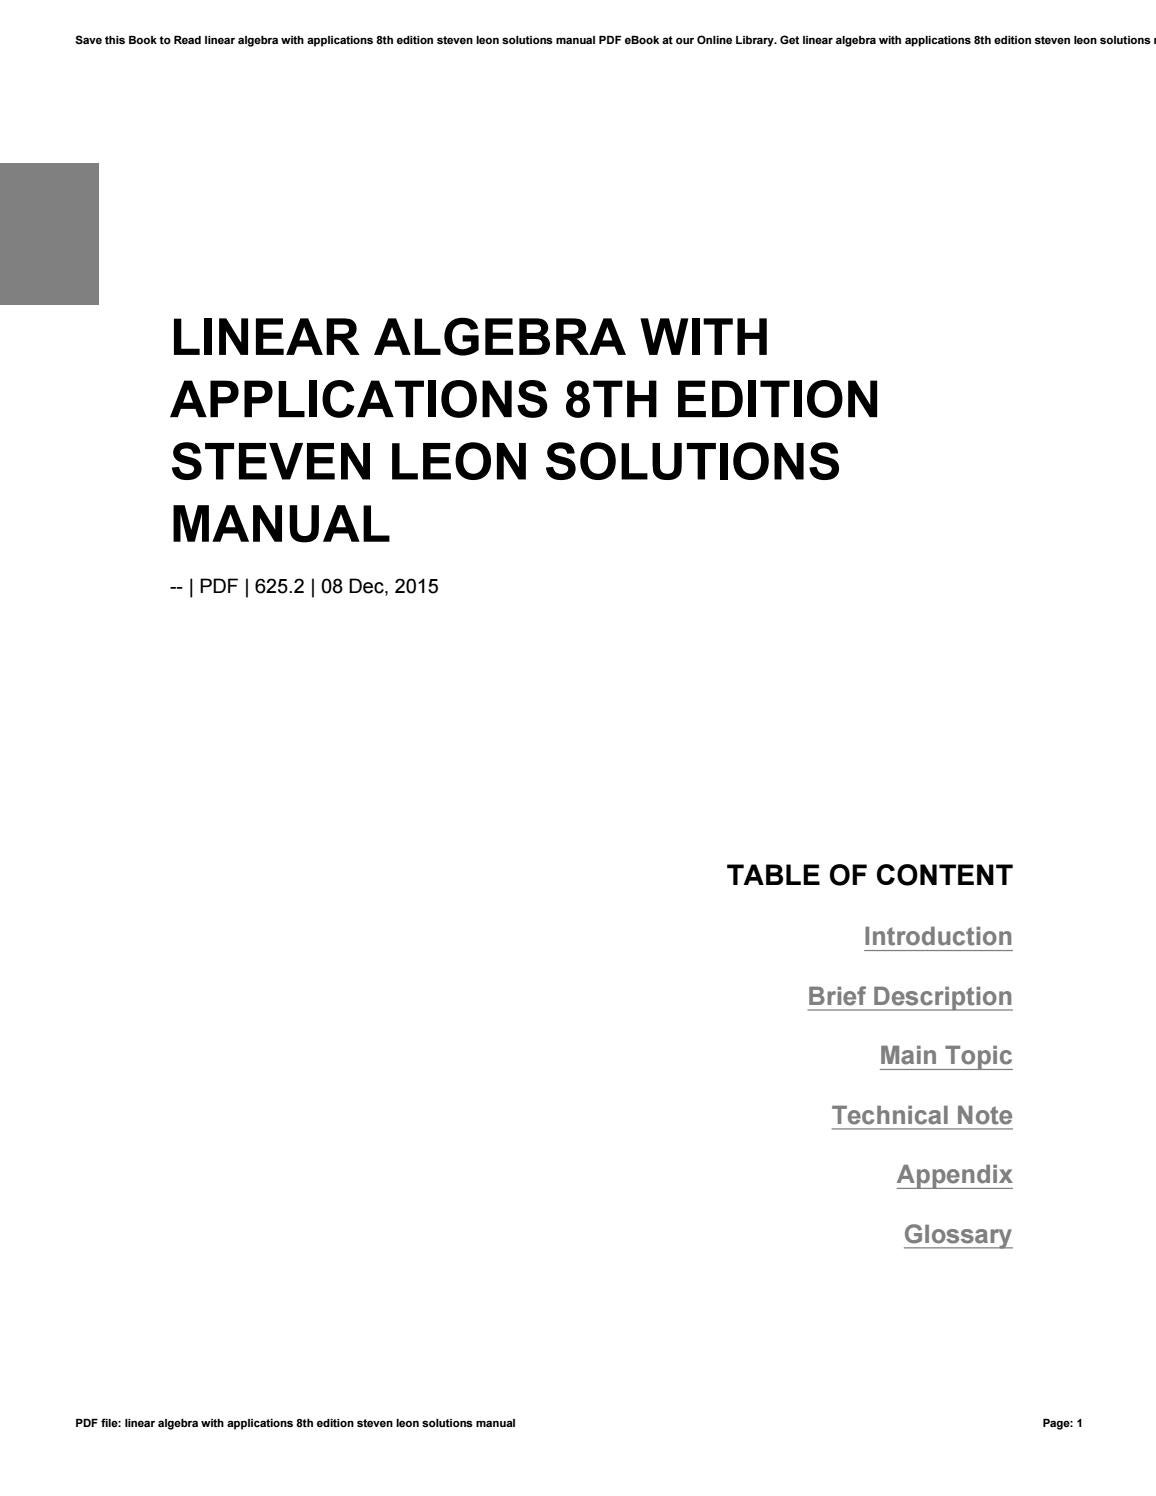 Linear algebra with applications 8th edition steven leon solutions manual  by farfurmail86 - issuu